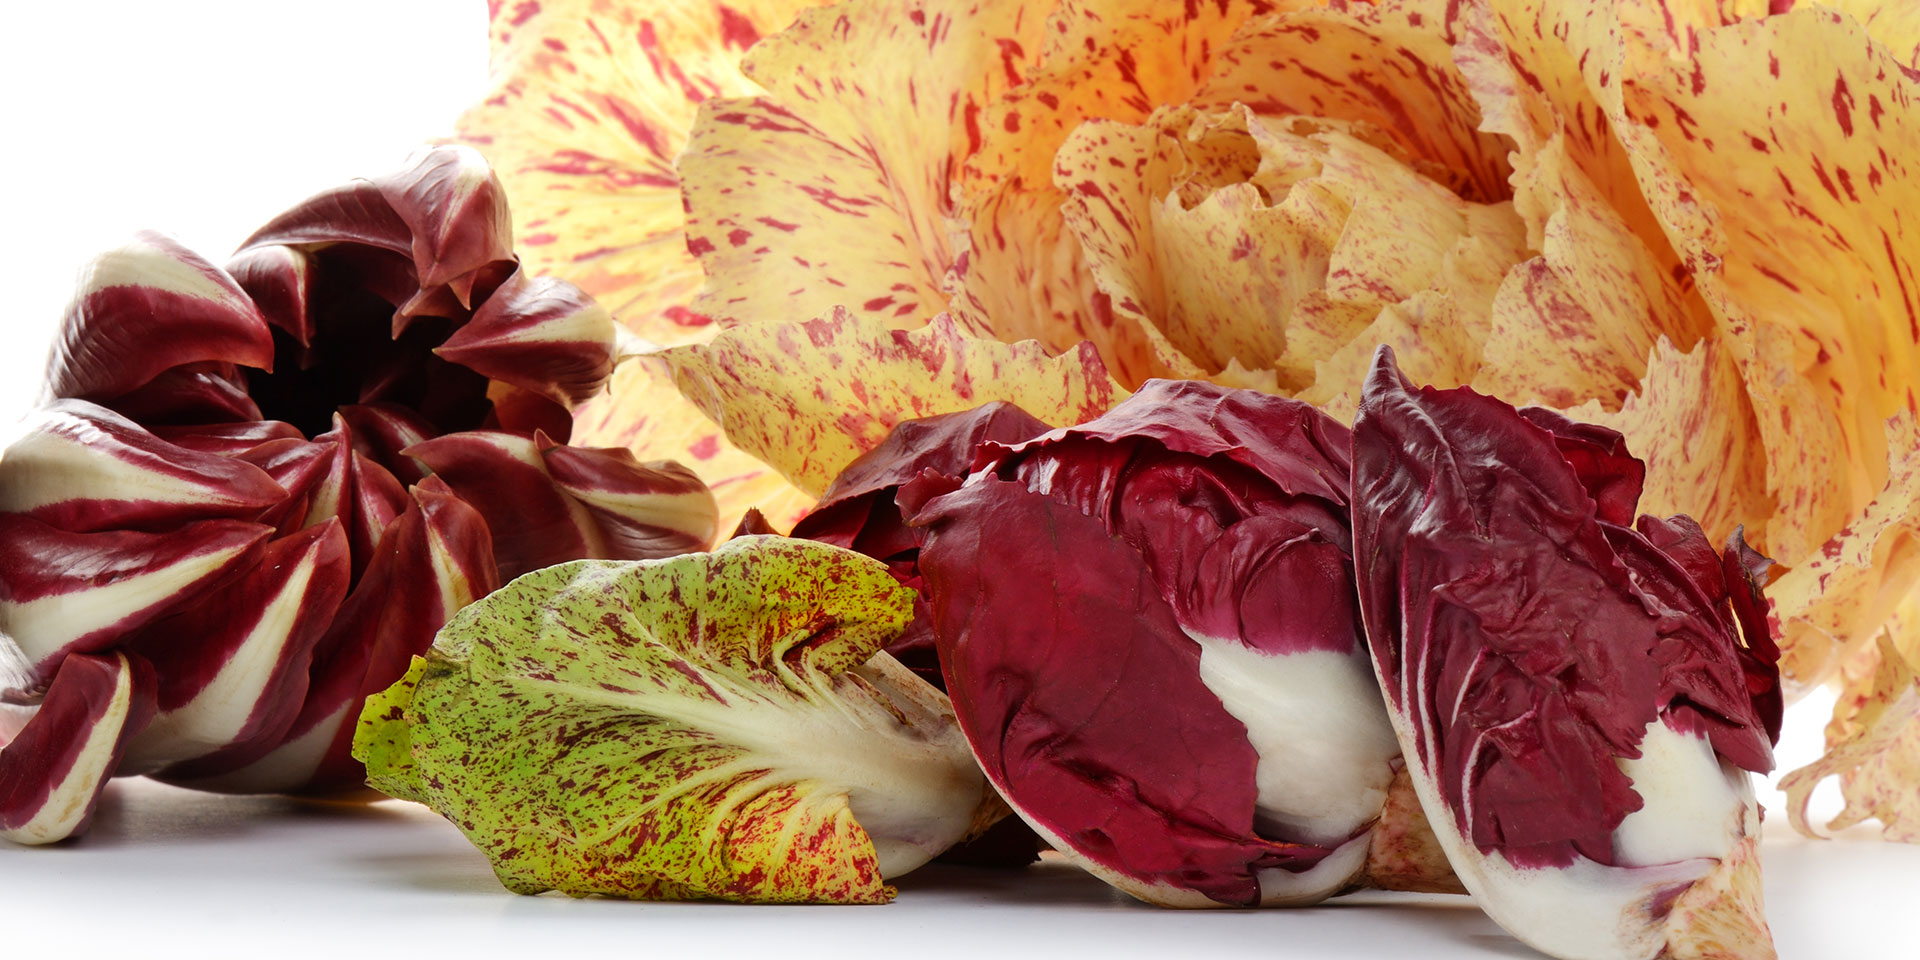 Eat Seasonally This Winter With Radicchio